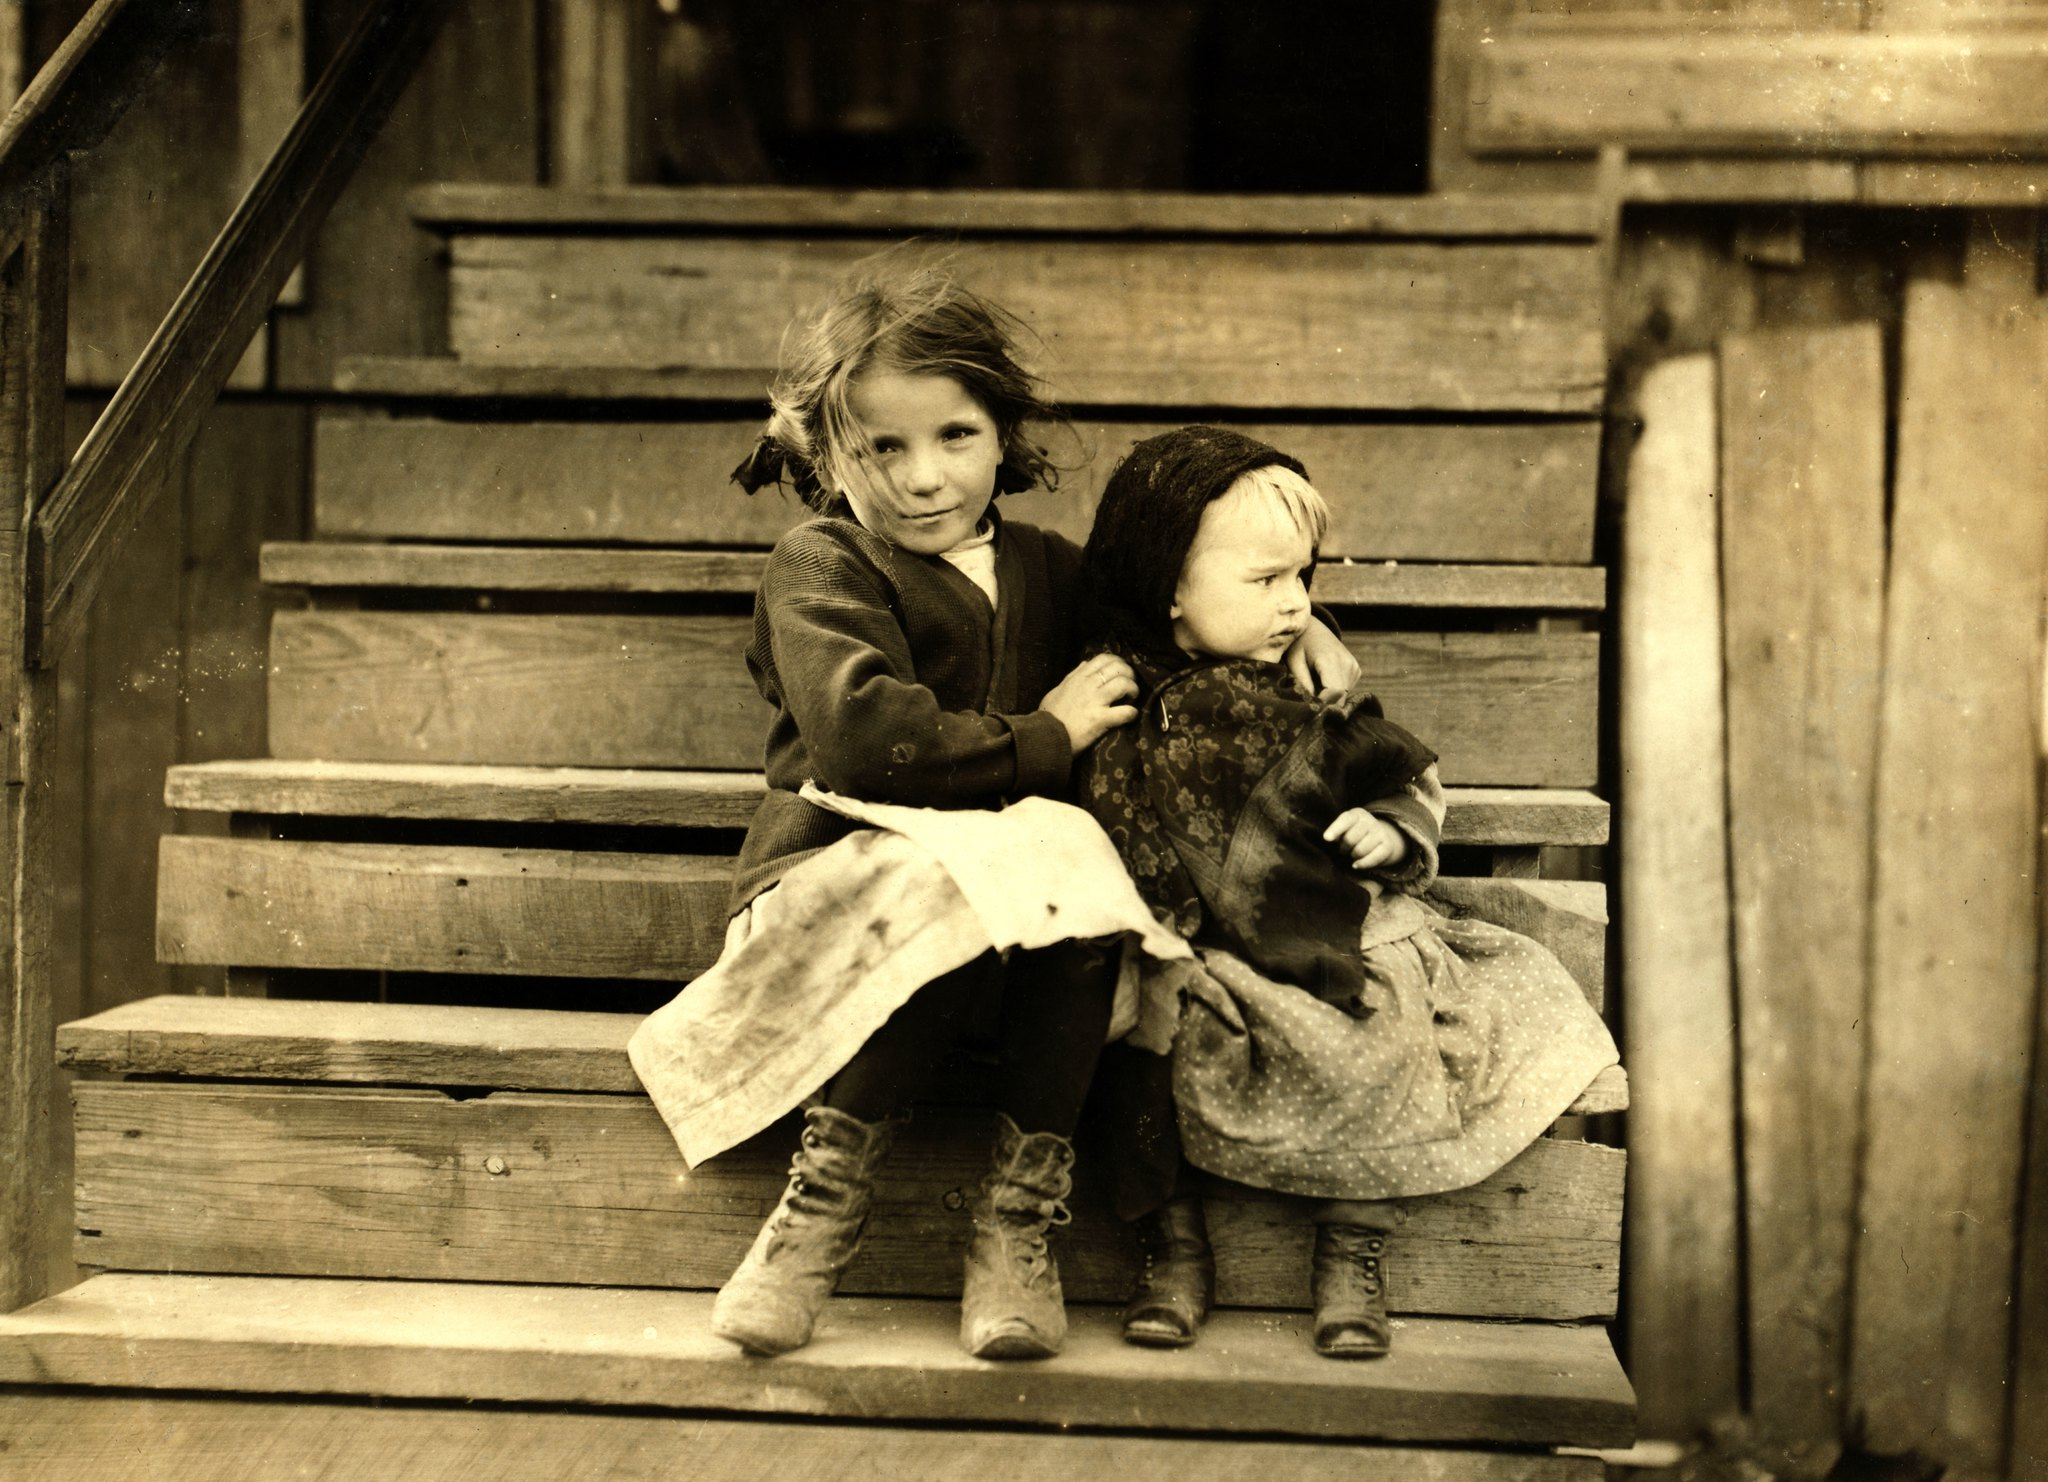 Little Julia Tending the Baby: Photography by Lewis Wickes Hine, 1911